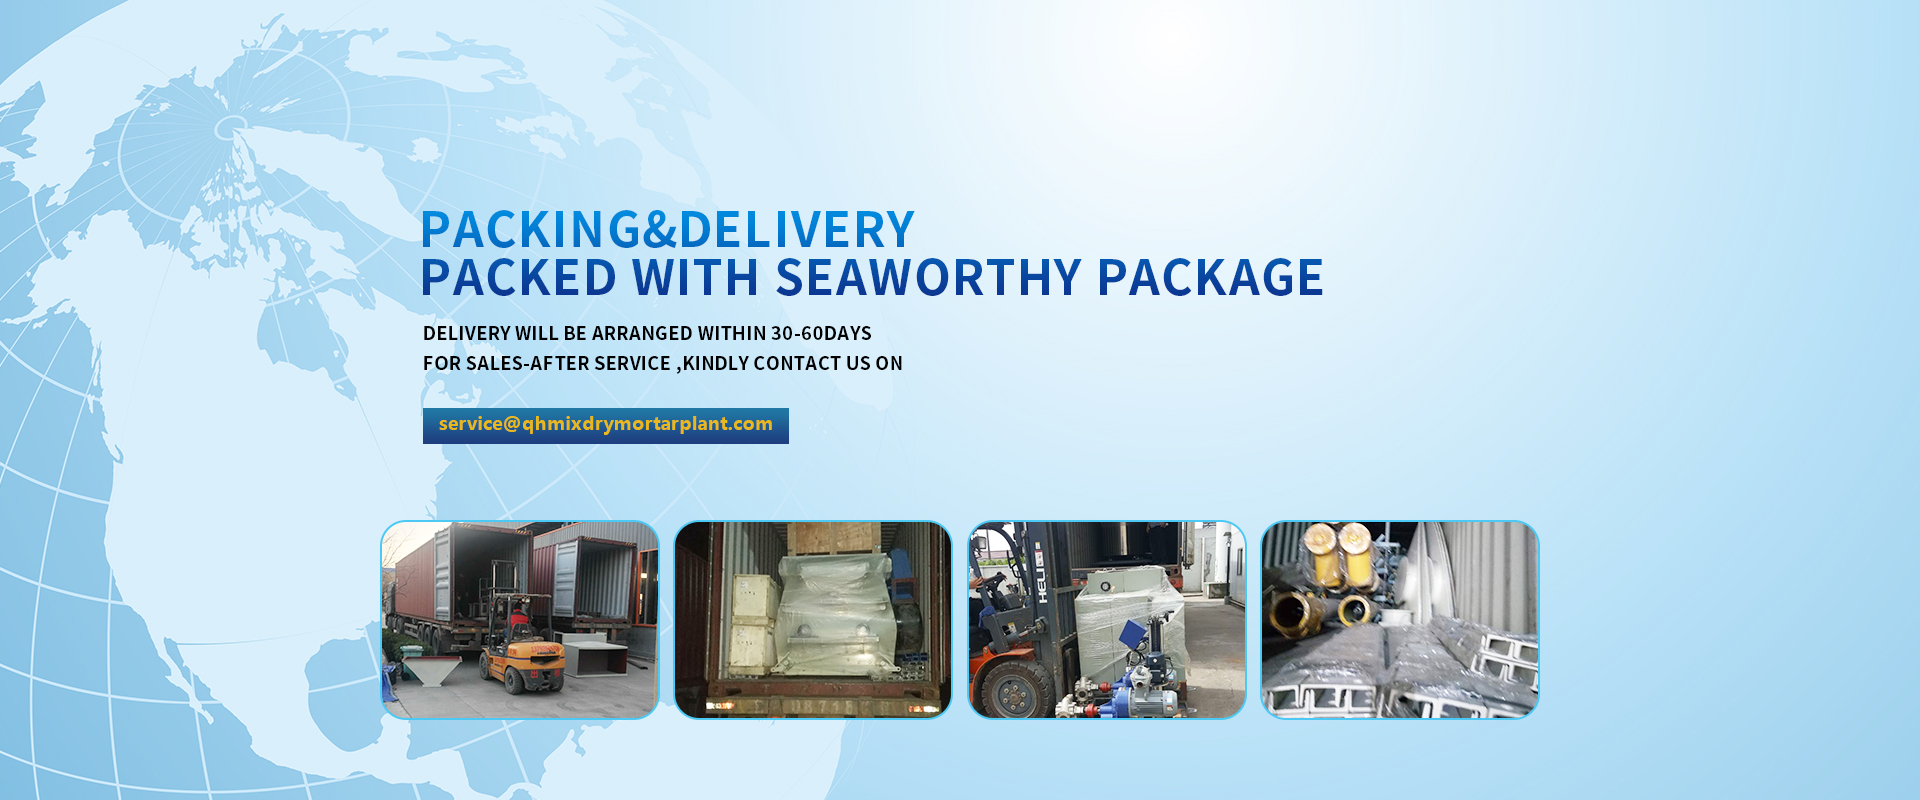 SHANDONG QUANHUA IMPORT & EXPORT CO., LTD.